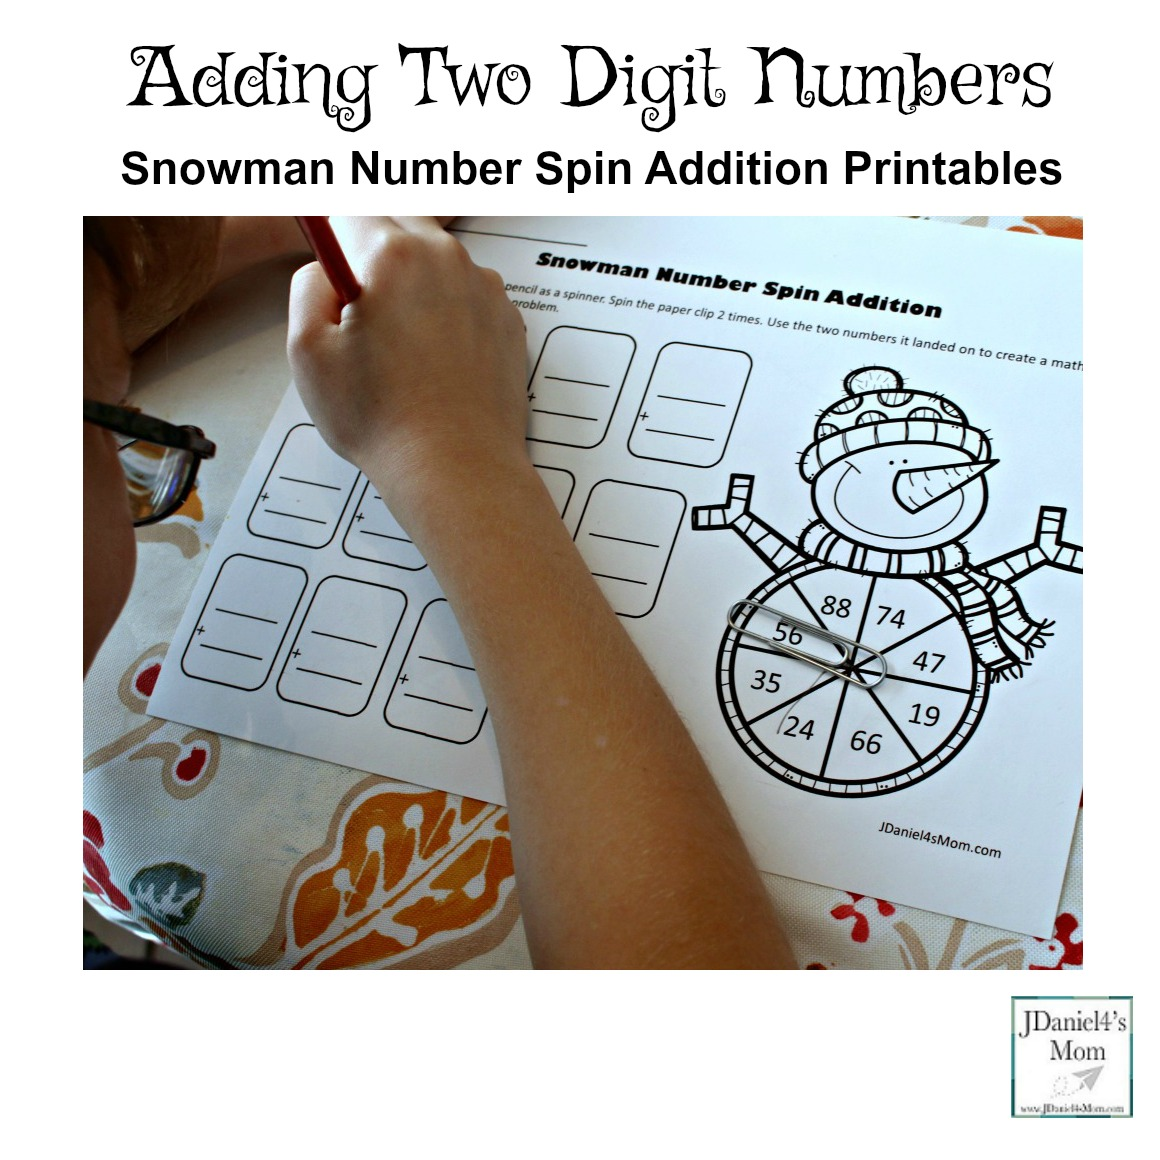 Adding Two Digit Numbers - Snowman Number Spin Addition